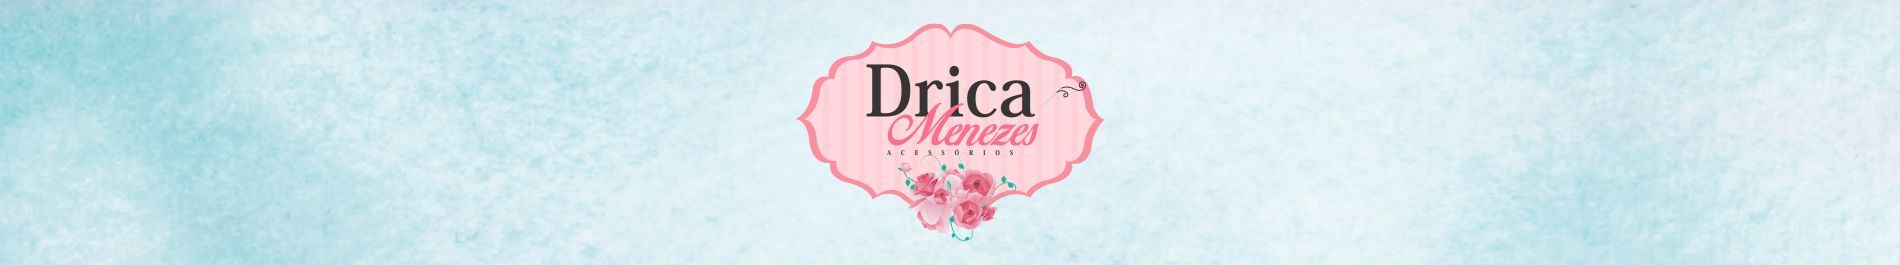 Drica Menezes